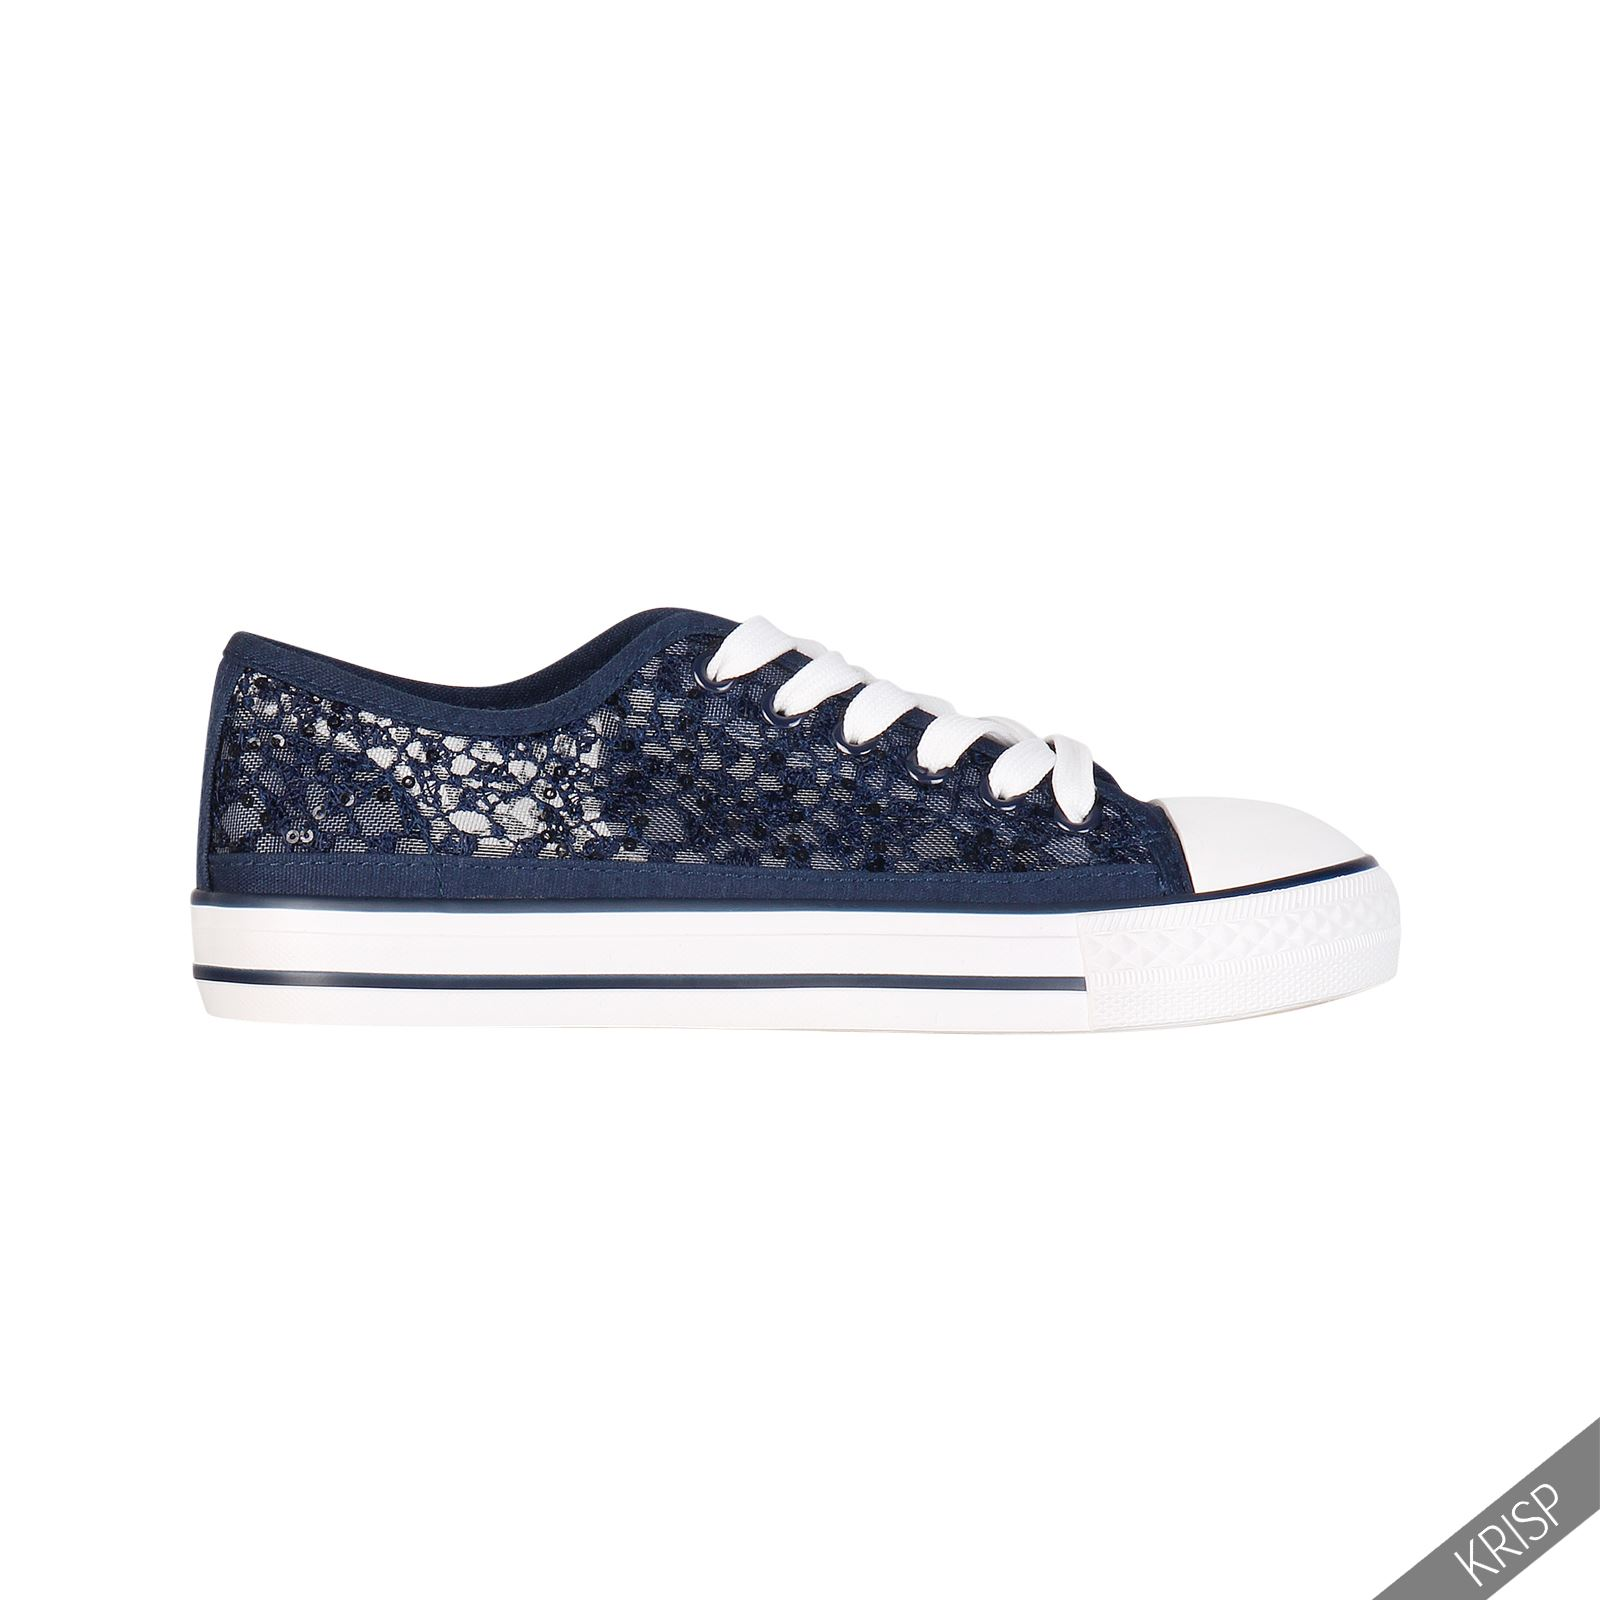 damen flache sneaker bequeme turnschuhe low top geh kelte schuhe sommer casual ebay. Black Bedroom Furniture Sets. Home Design Ideas